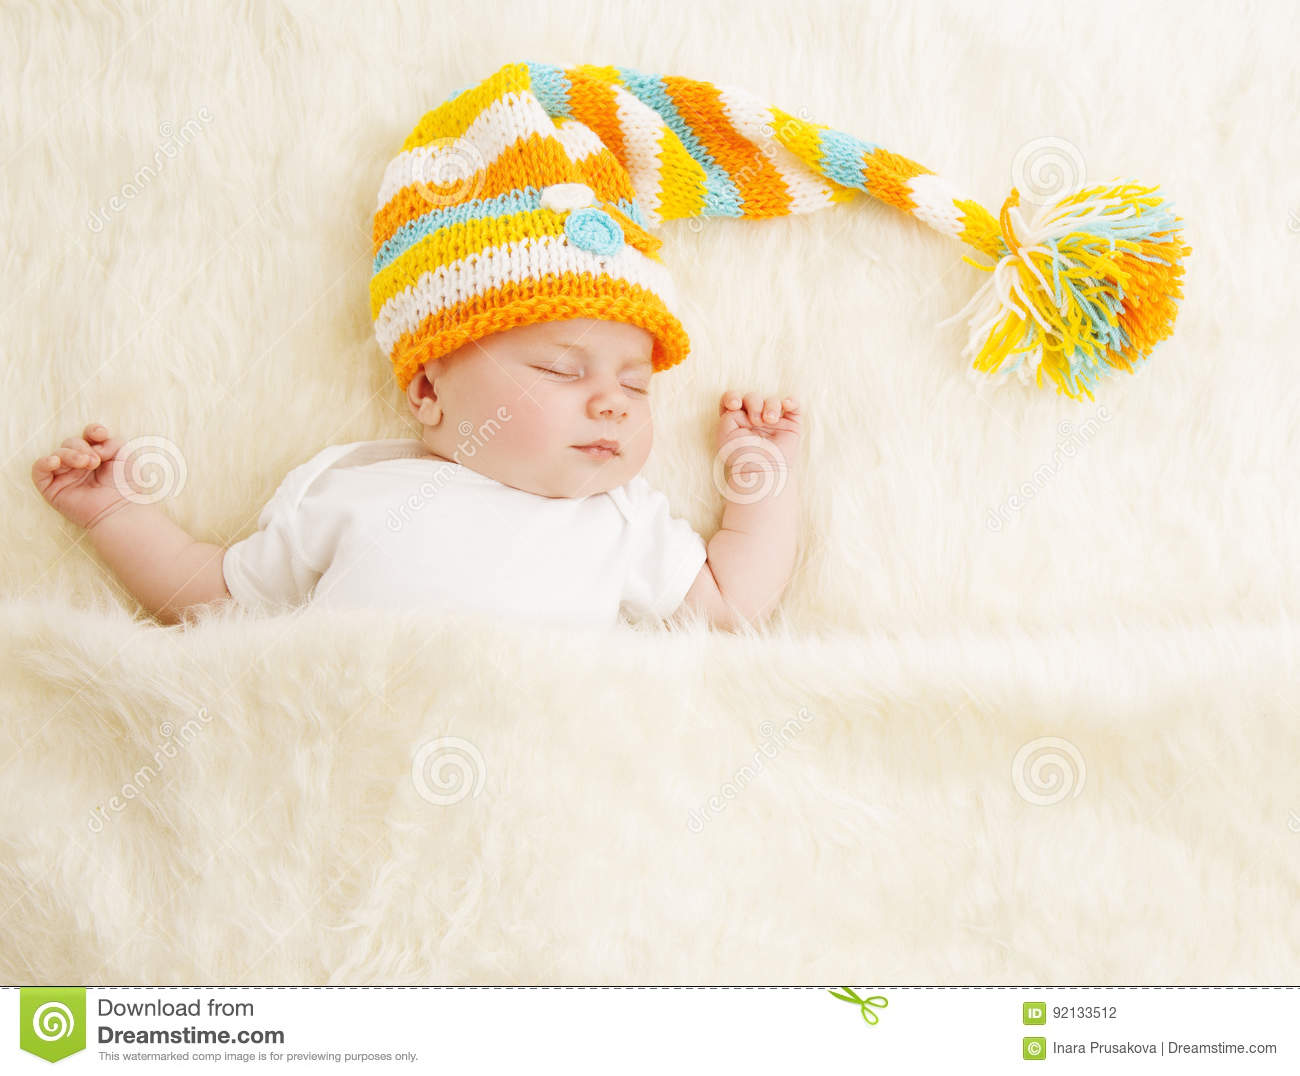 Baby Sleep in Hat, Sleeping Newborn Kid in Bed, Asleep New Born